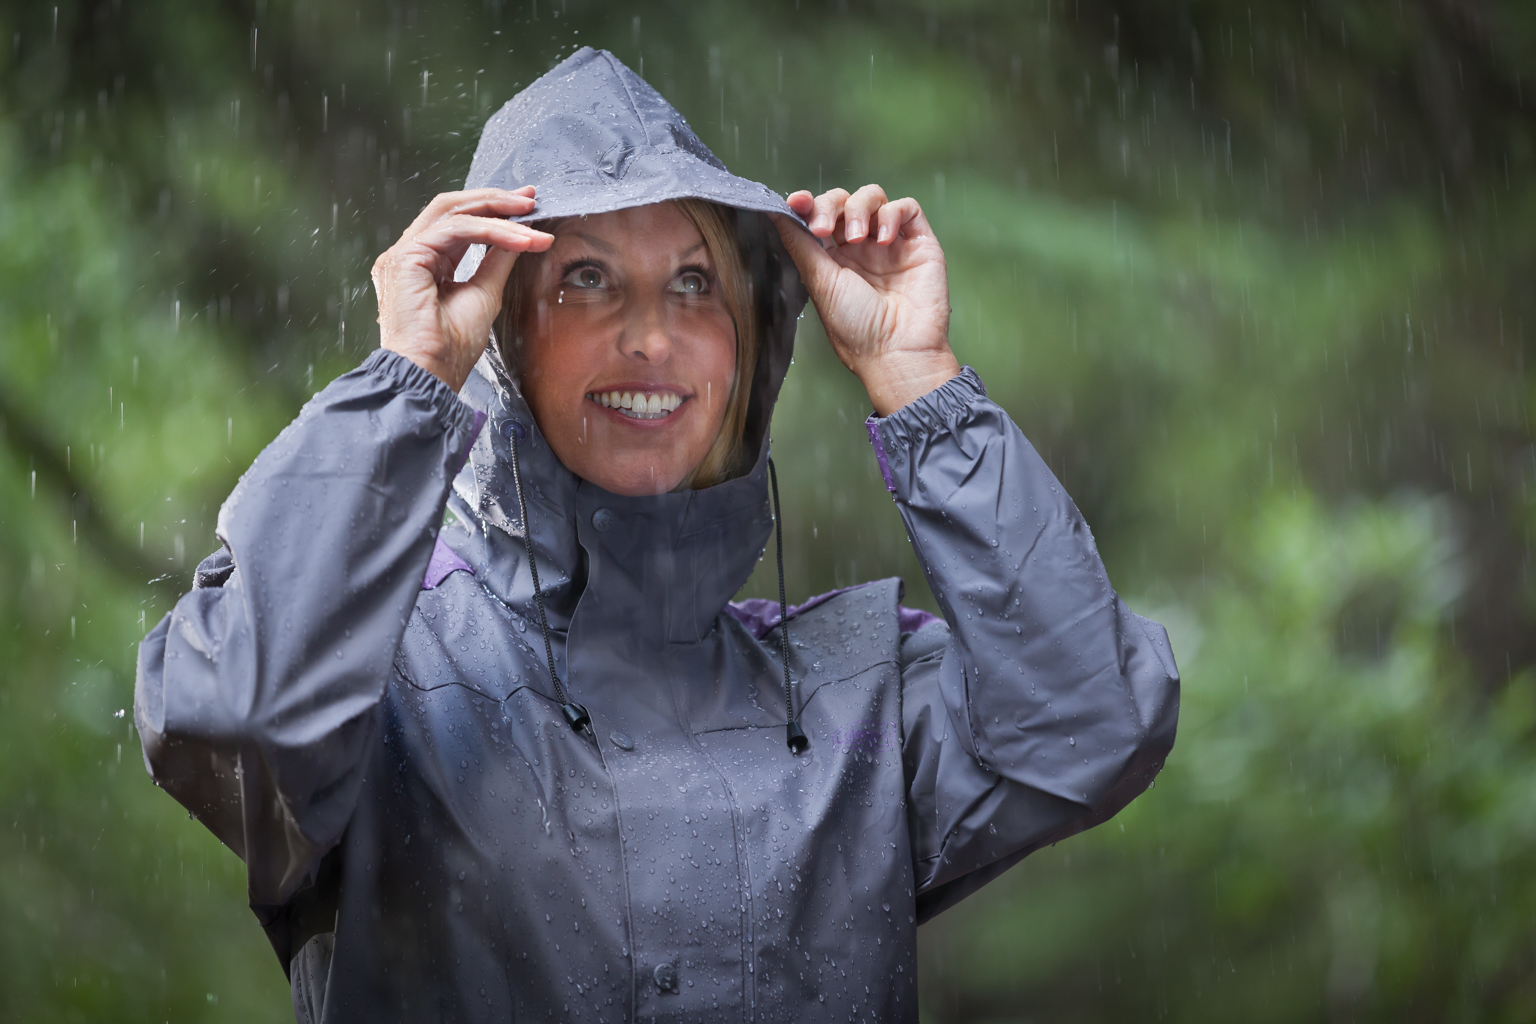 Woman protected from rain in Coleman rain wear